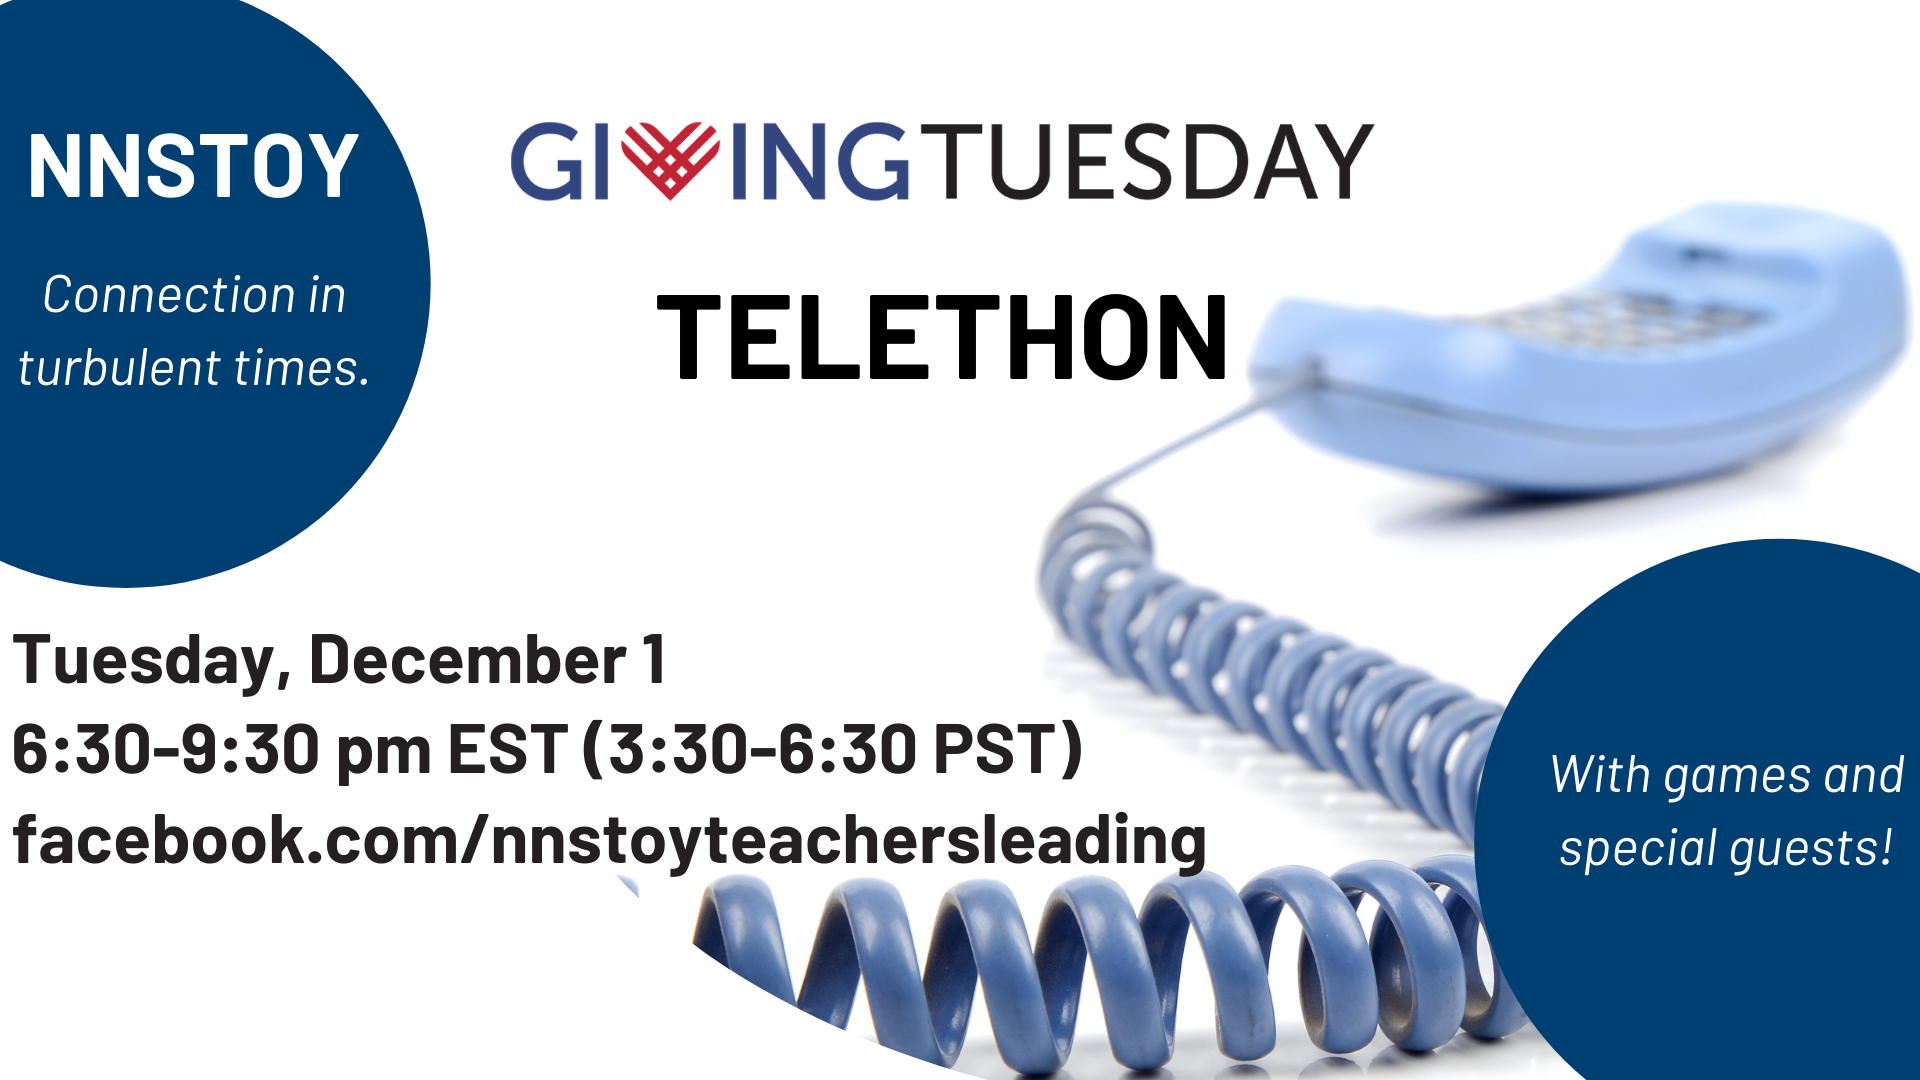 NNSTOY's Annual Giving Campaign